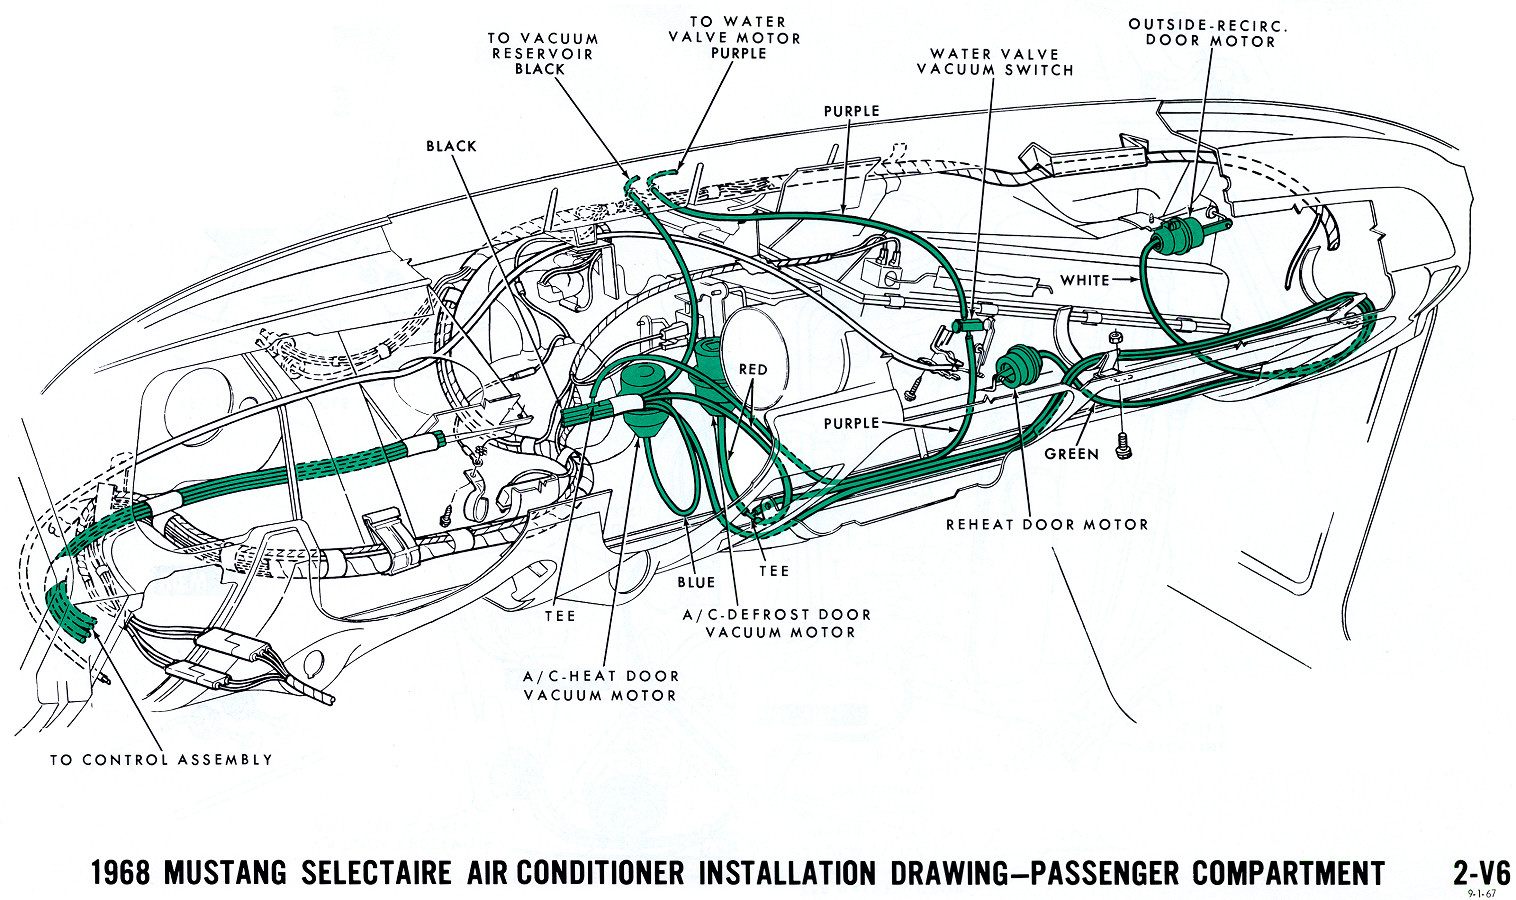 1970 Mustang Wiring Schematic | Wiring Liry on computer schematics, ignition schematics, generator schematics, plumbing schematics, wire schematics, circuit schematics, ford diagrams schematics, ecu schematics, transmission schematics, piping schematics, engineering schematics, electronics schematics, transformer schematics, motor schematics, ductwork schematics, electrical schematics, tube amp schematics, amplifier schematics, engine schematics, design schematics,